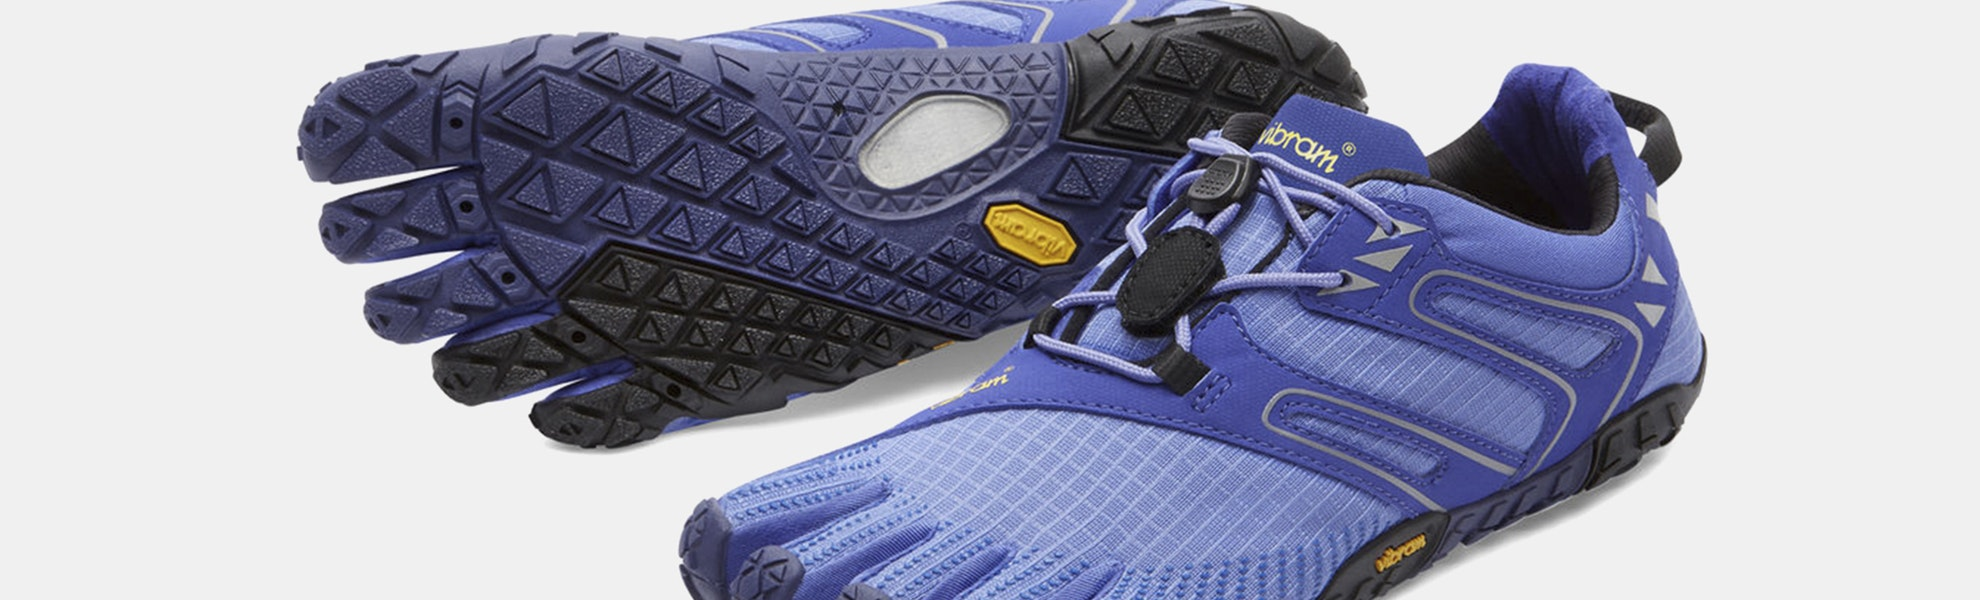 Vibram Five Fingers V-Trail Shoes